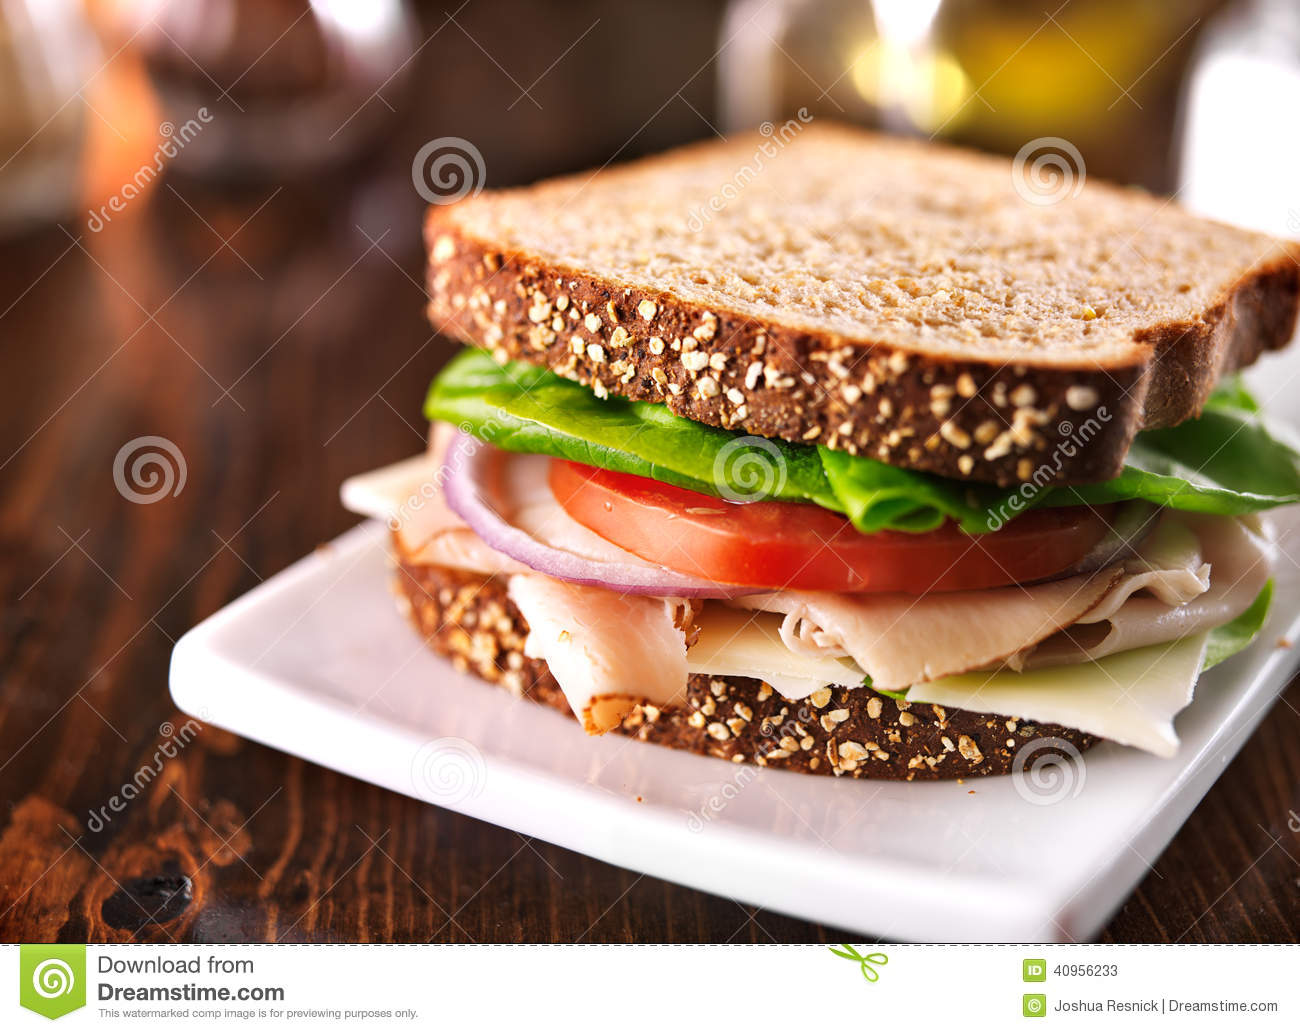 Whole Foods Ham And Swiss Sandwich